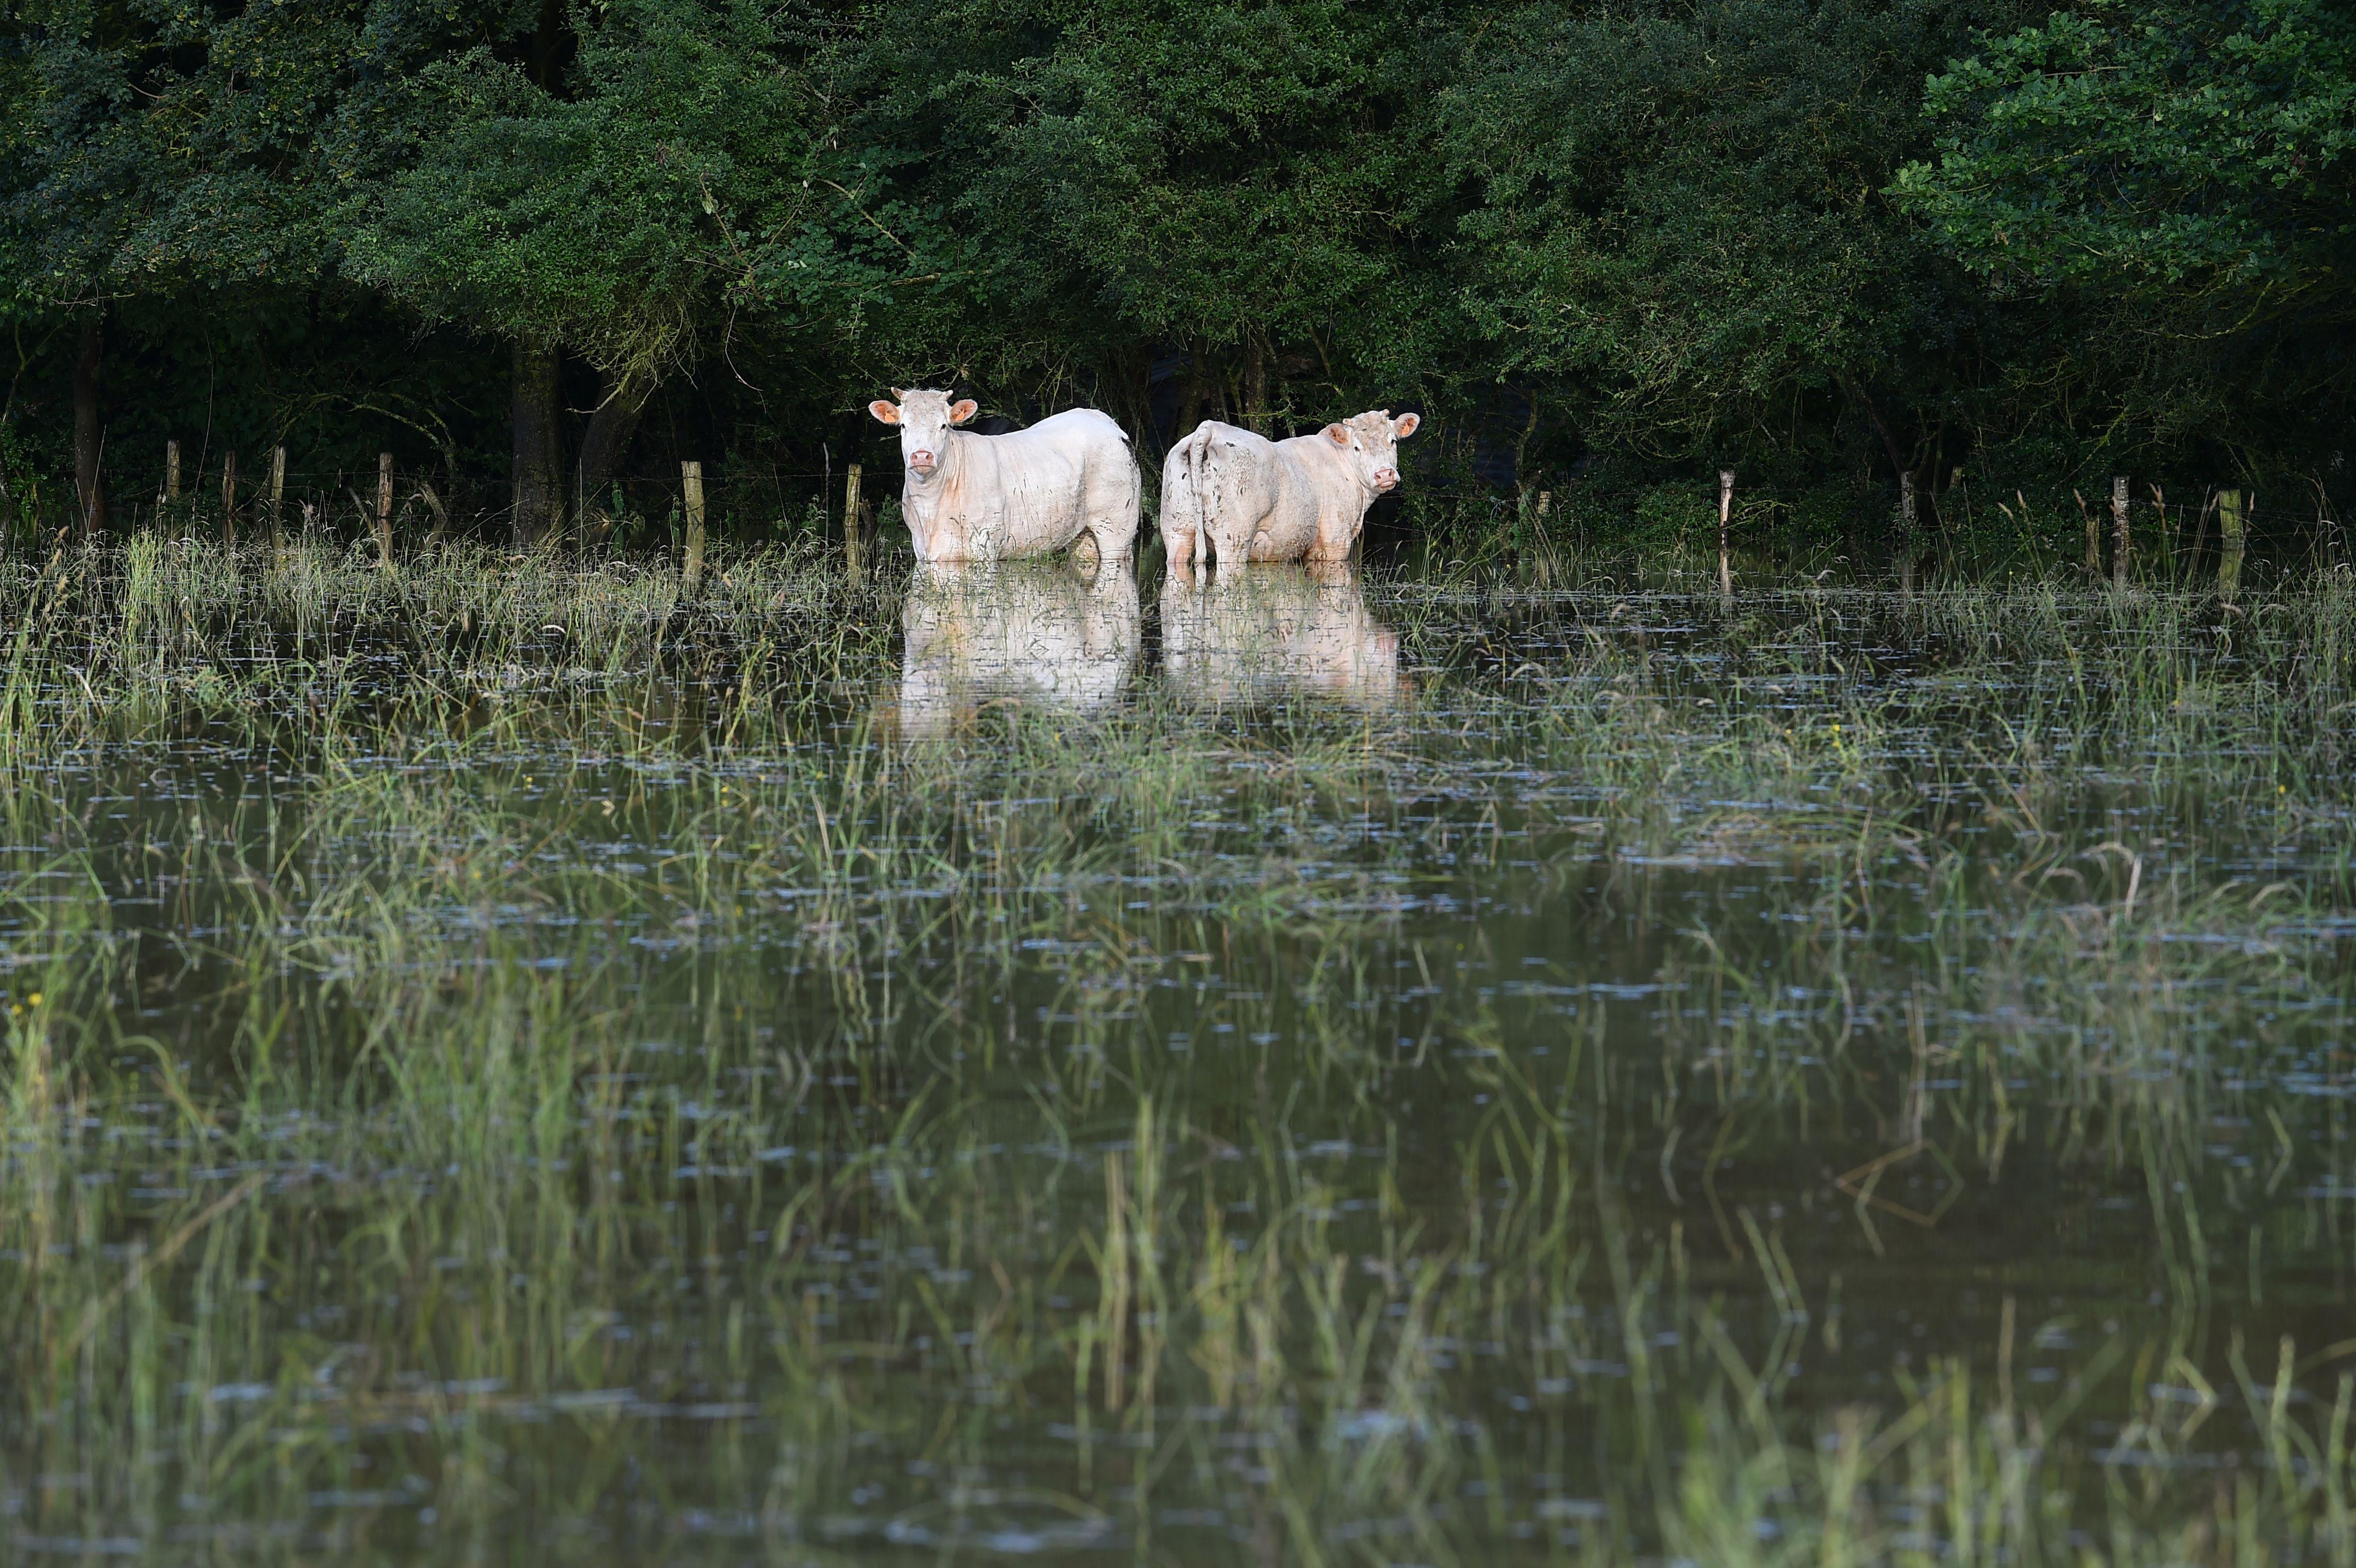 Two cows stand in a flooded medow